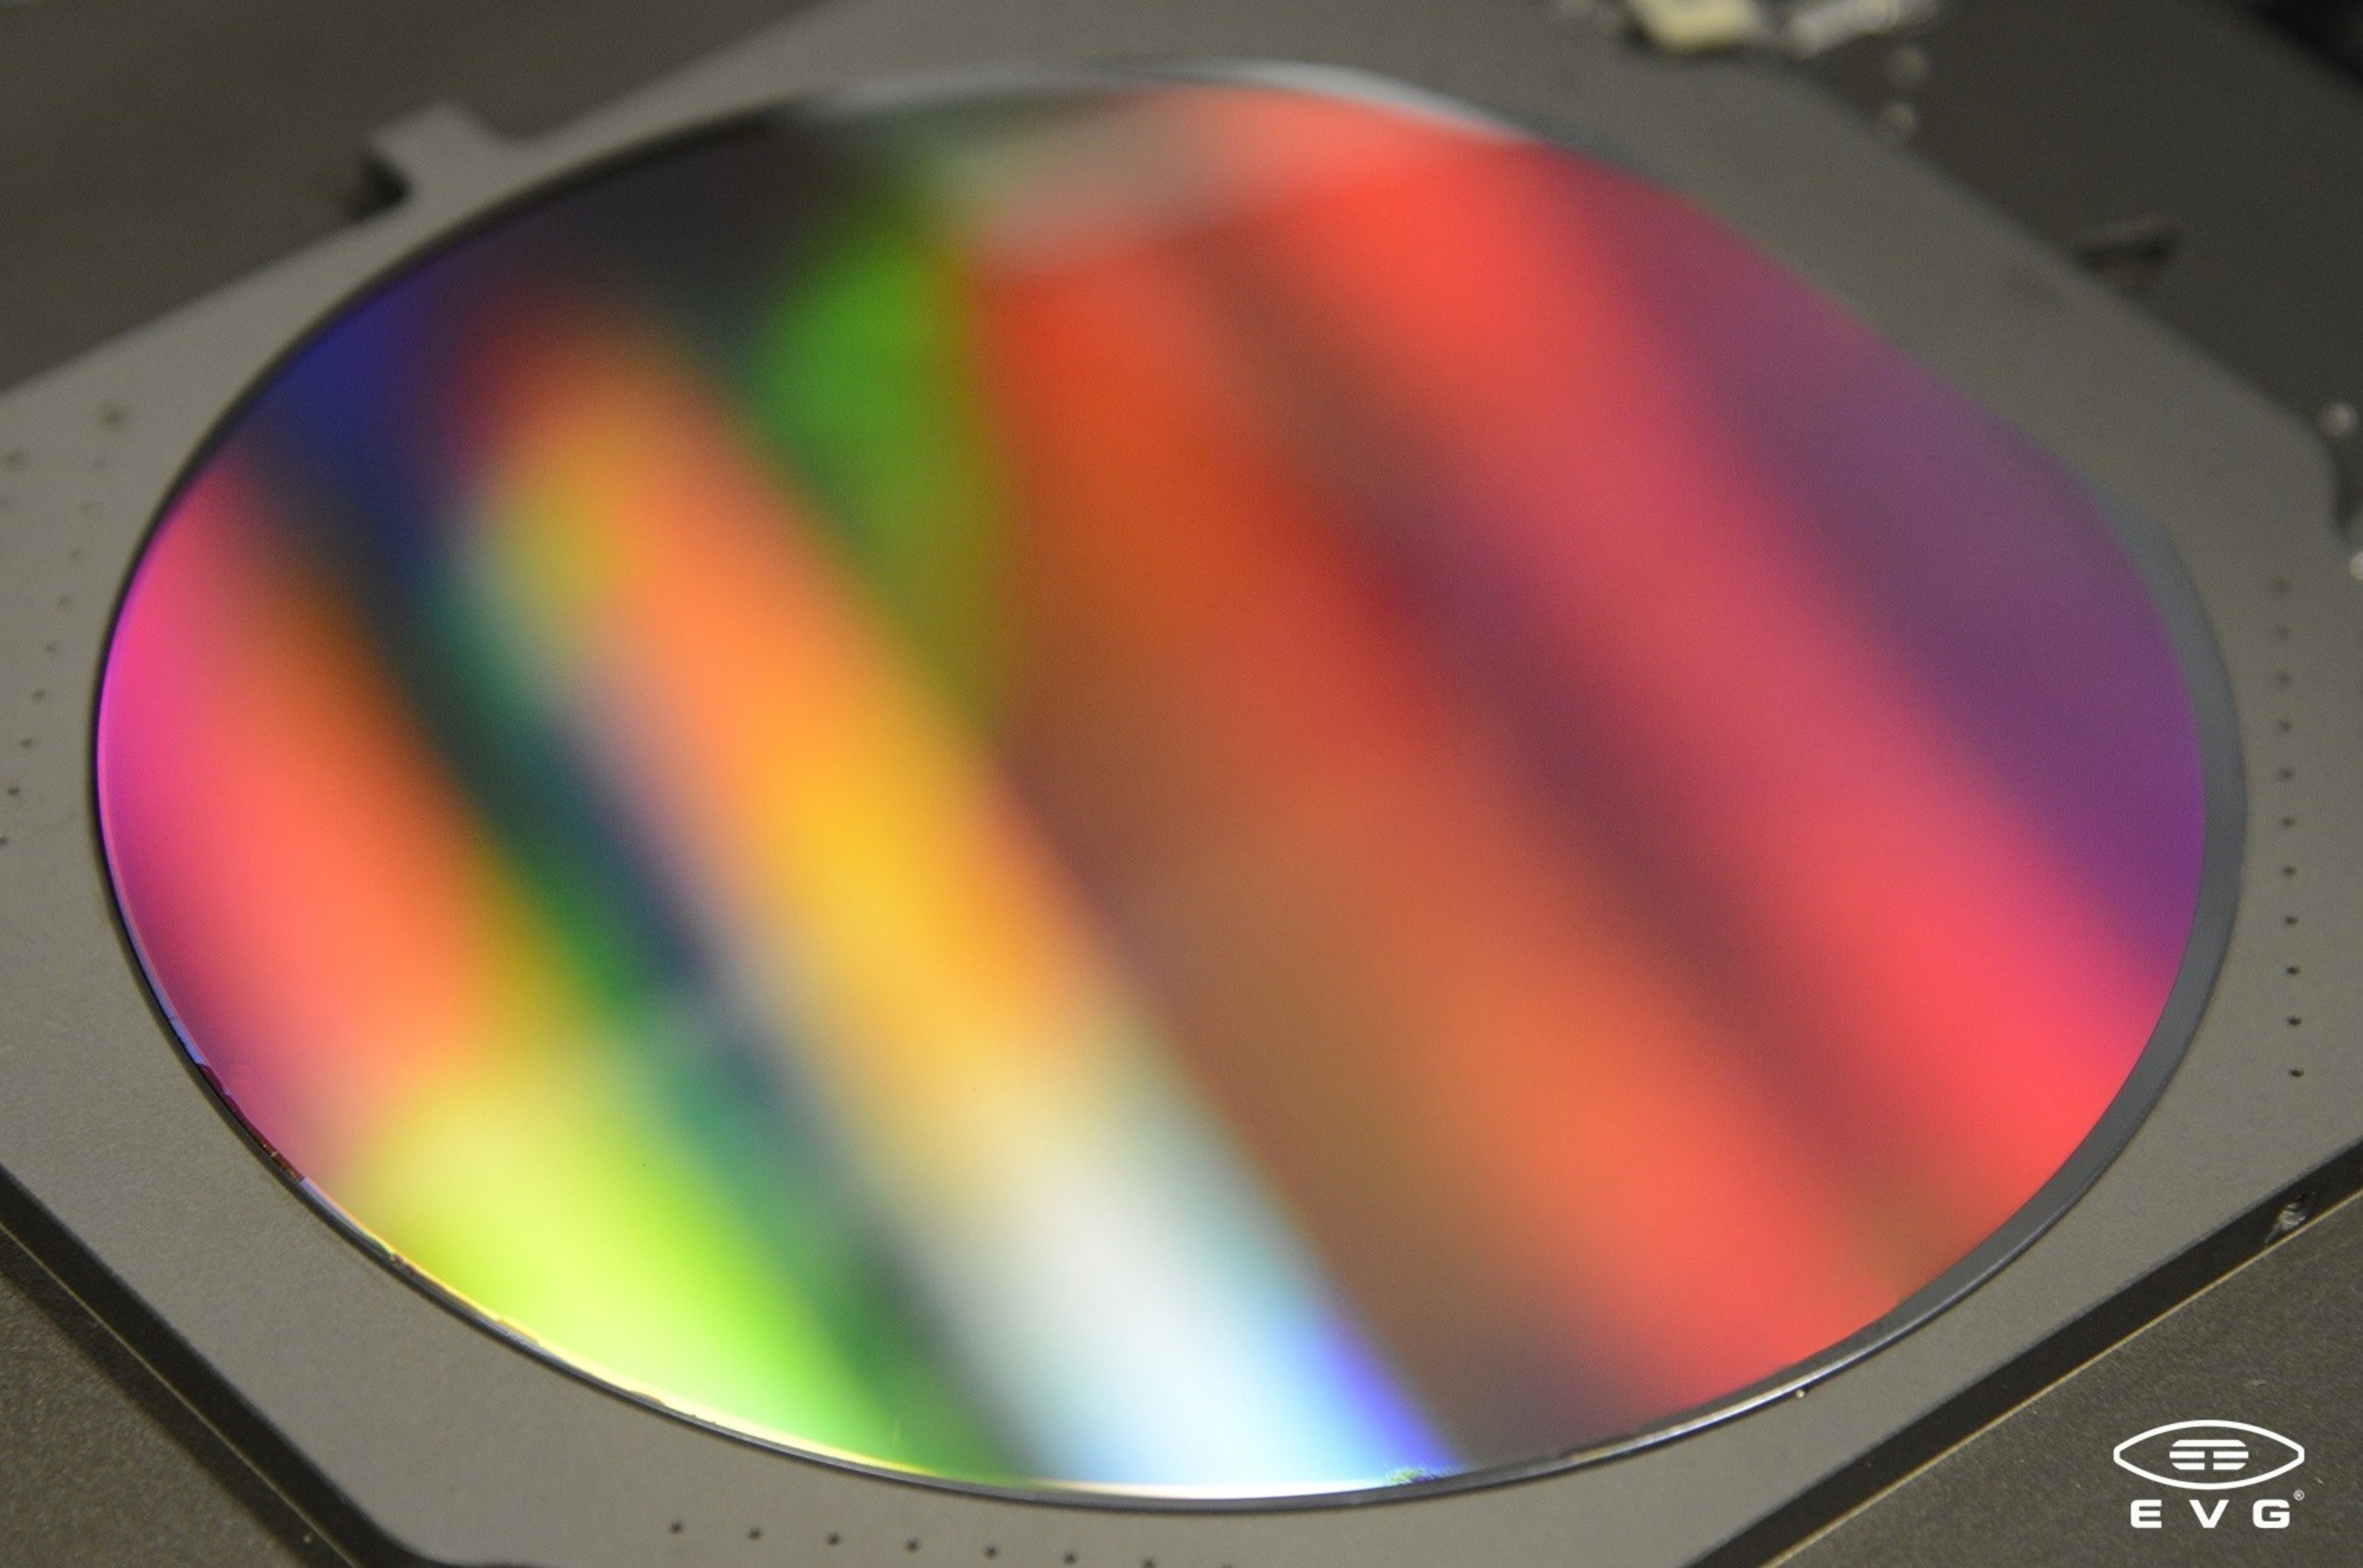 EV Group's NILPhotonics(TM) Competence Center assists customers in leveraging EVG's nanoimprint lithography (NIL) solutions to enable new photonic products and applications. Shown here is a six-inch full-area nanoimprinted wafer processed by EVG NIL solutions. This technology enables almost infinite design freedom to create various kinds of photonic structures.